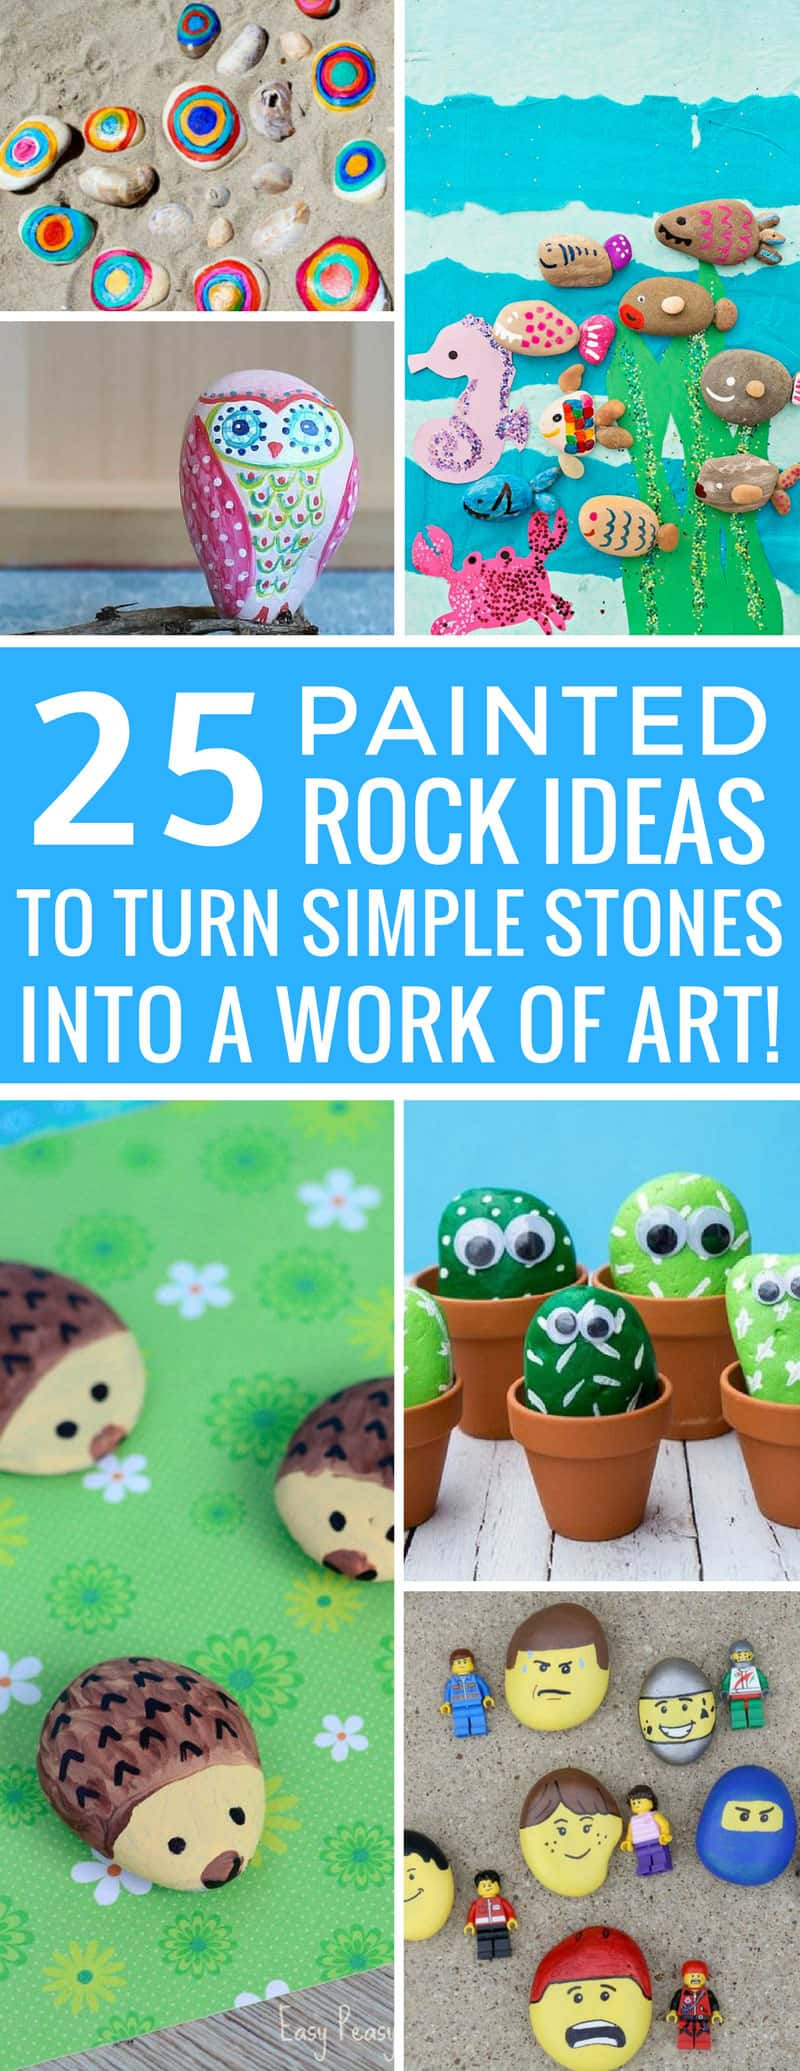 How cute are these painted rock ideas! They're easy for the kids and just what we need for our summer stone collection! Thanks for sharing!